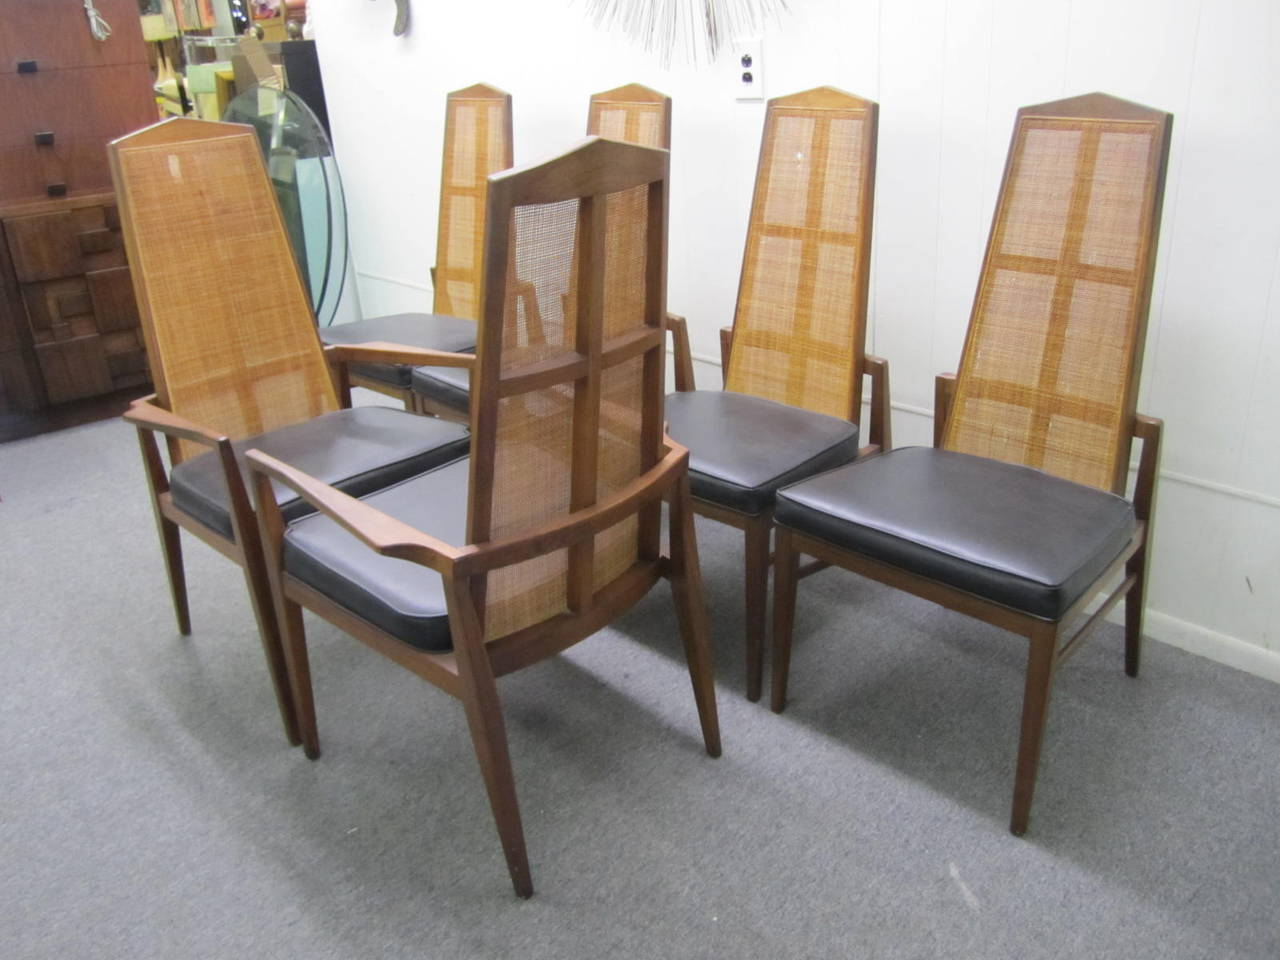 Mid Century Modern Walnut Dining Set by Foster McDavid. Founded in 1950 in Tampa, Florida- Foster McDavid's designs exude the stylings of the mad men era. These chairs look great with their original Probber style octagon dining table-see last photo